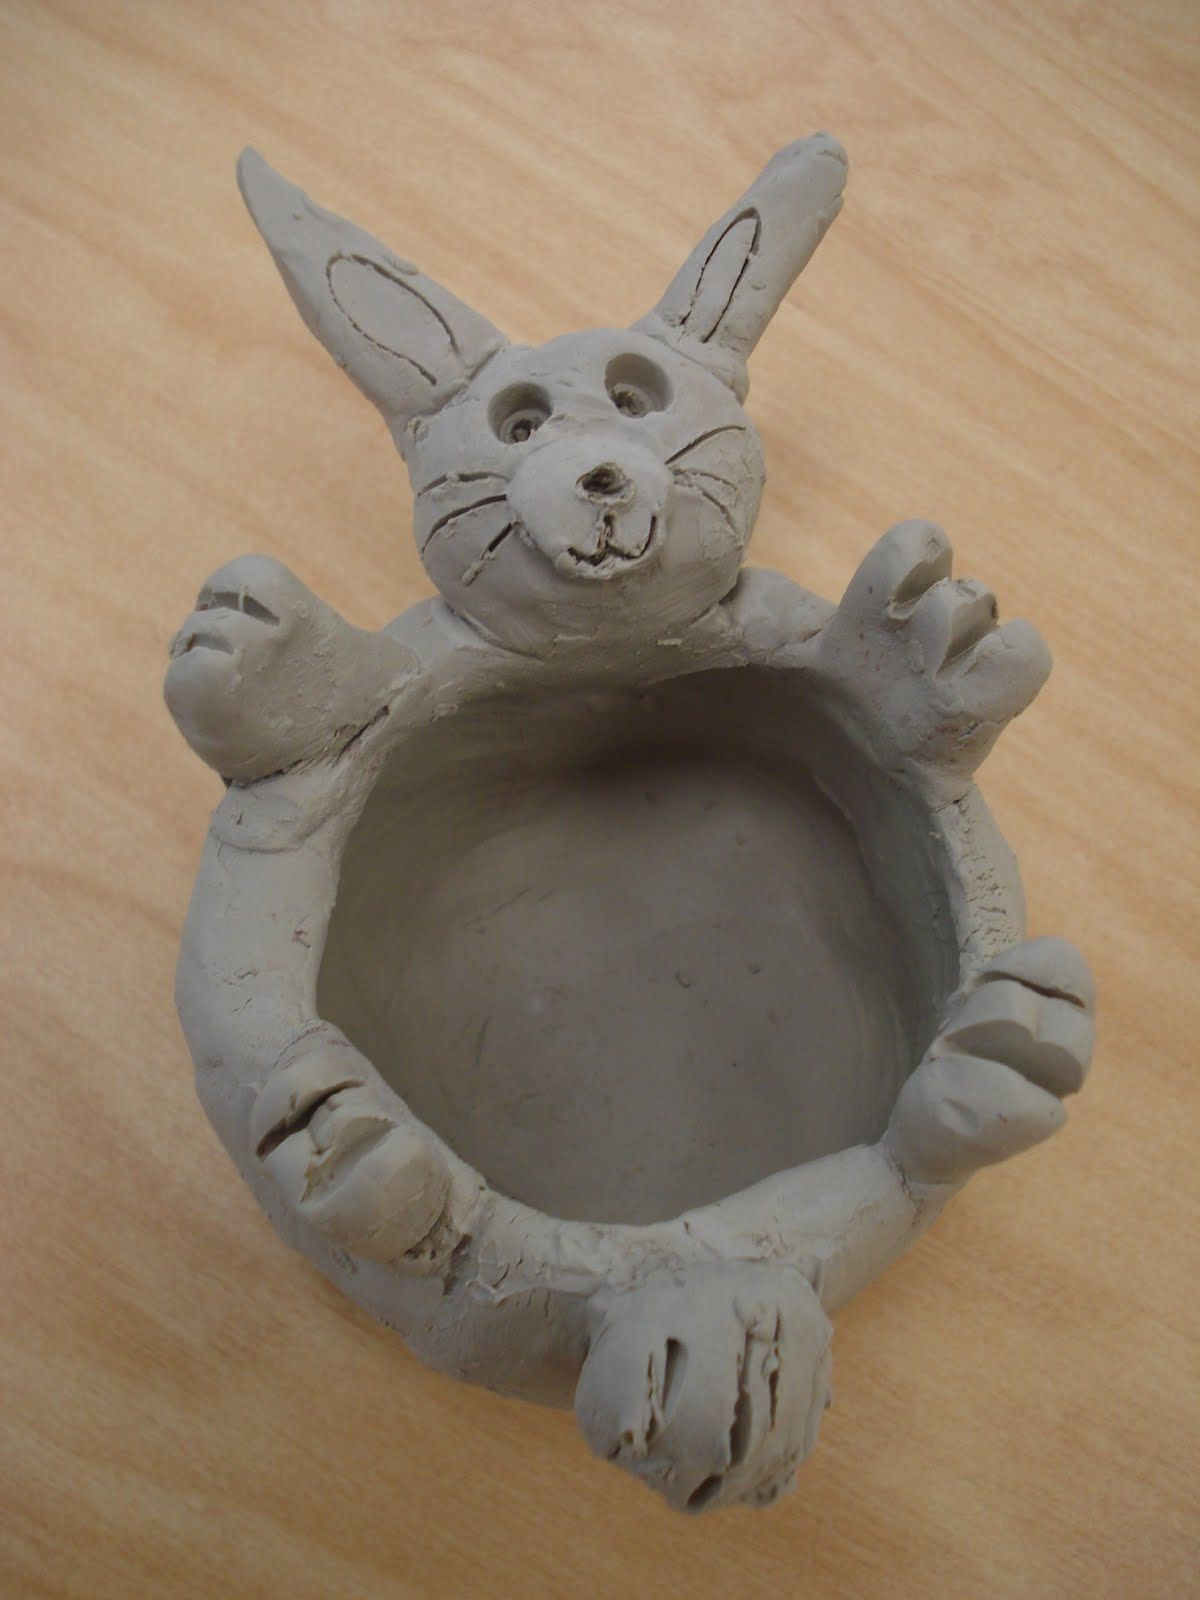 pinch pot animals | kids pottery project ideas | Clay ...